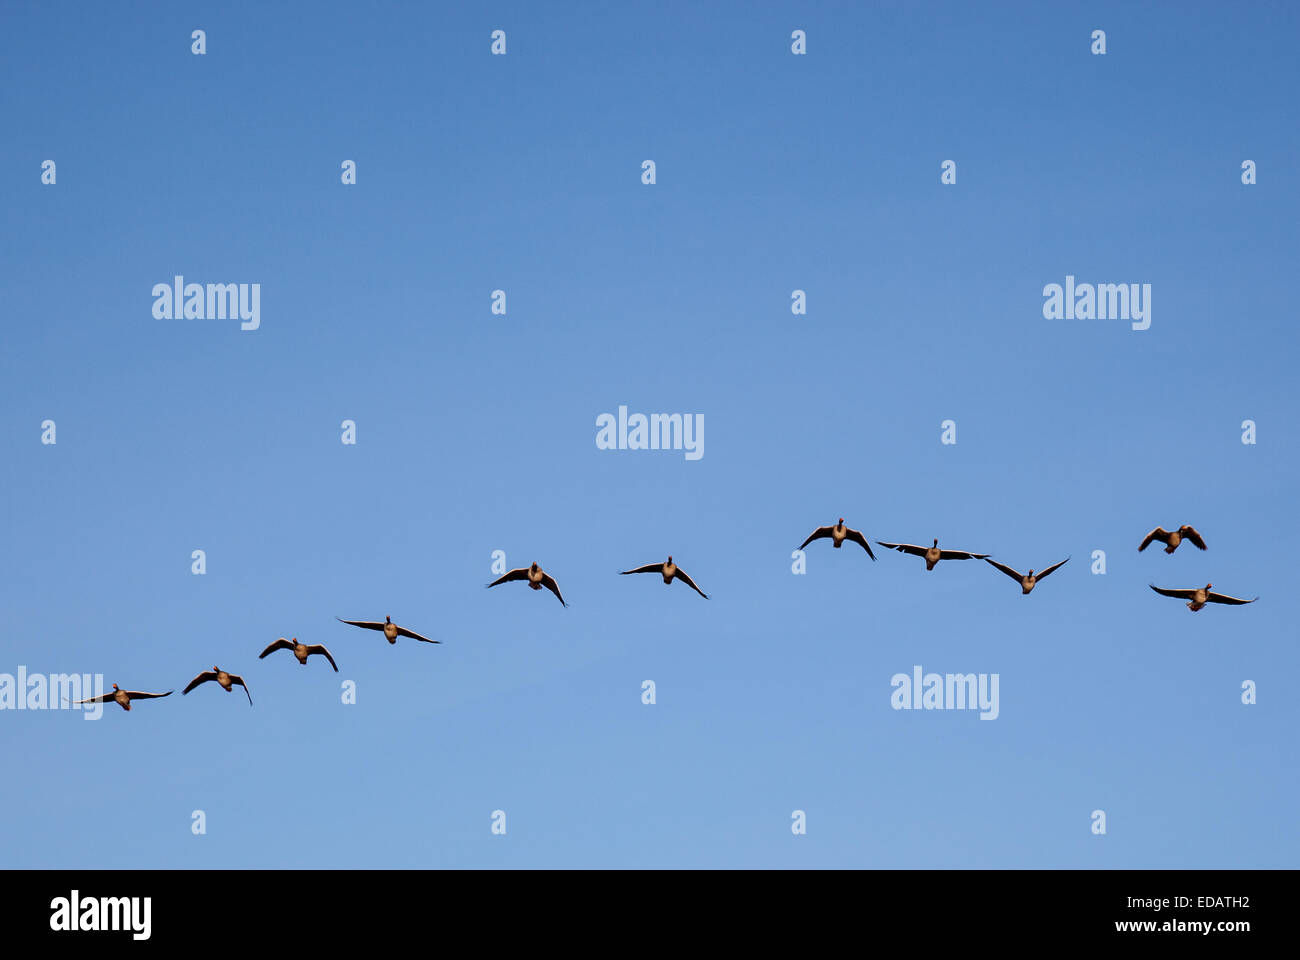 A skein of pink-footed geese flying in the sky - Stock Image